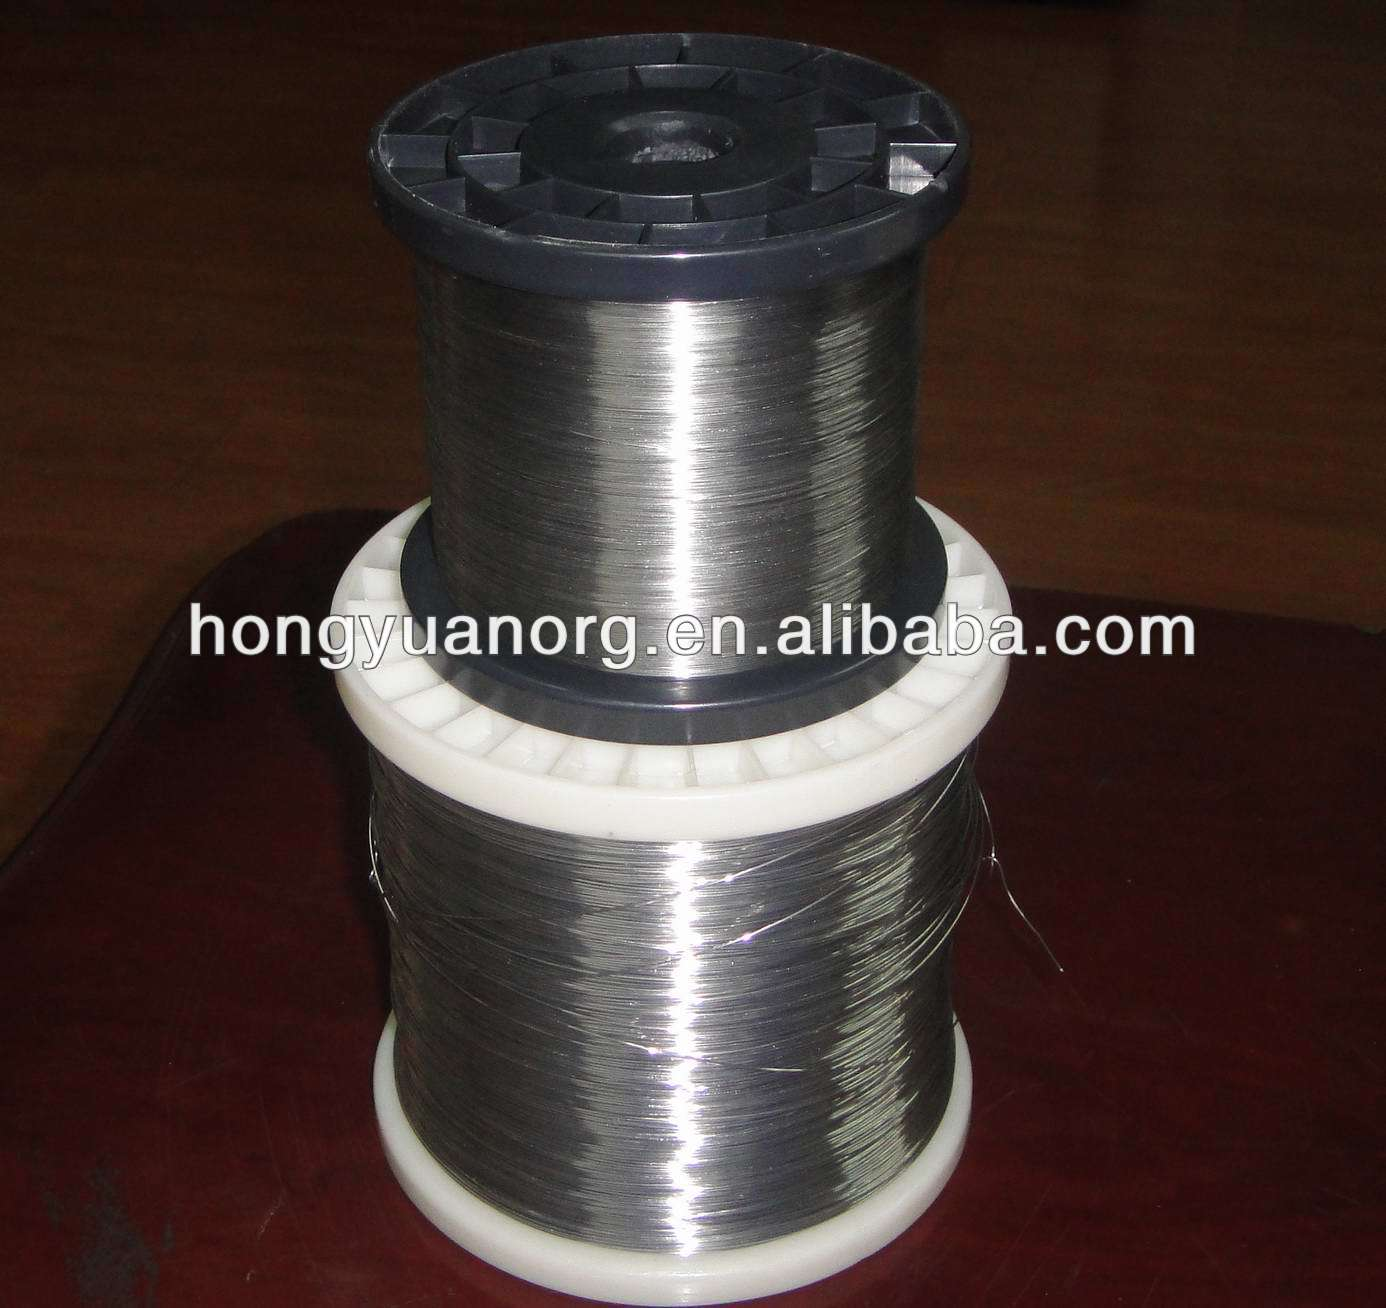 Ni80cr20 Flat Wire, Ni80cr20 Flat Wire Suppliers and Manufacturers ...